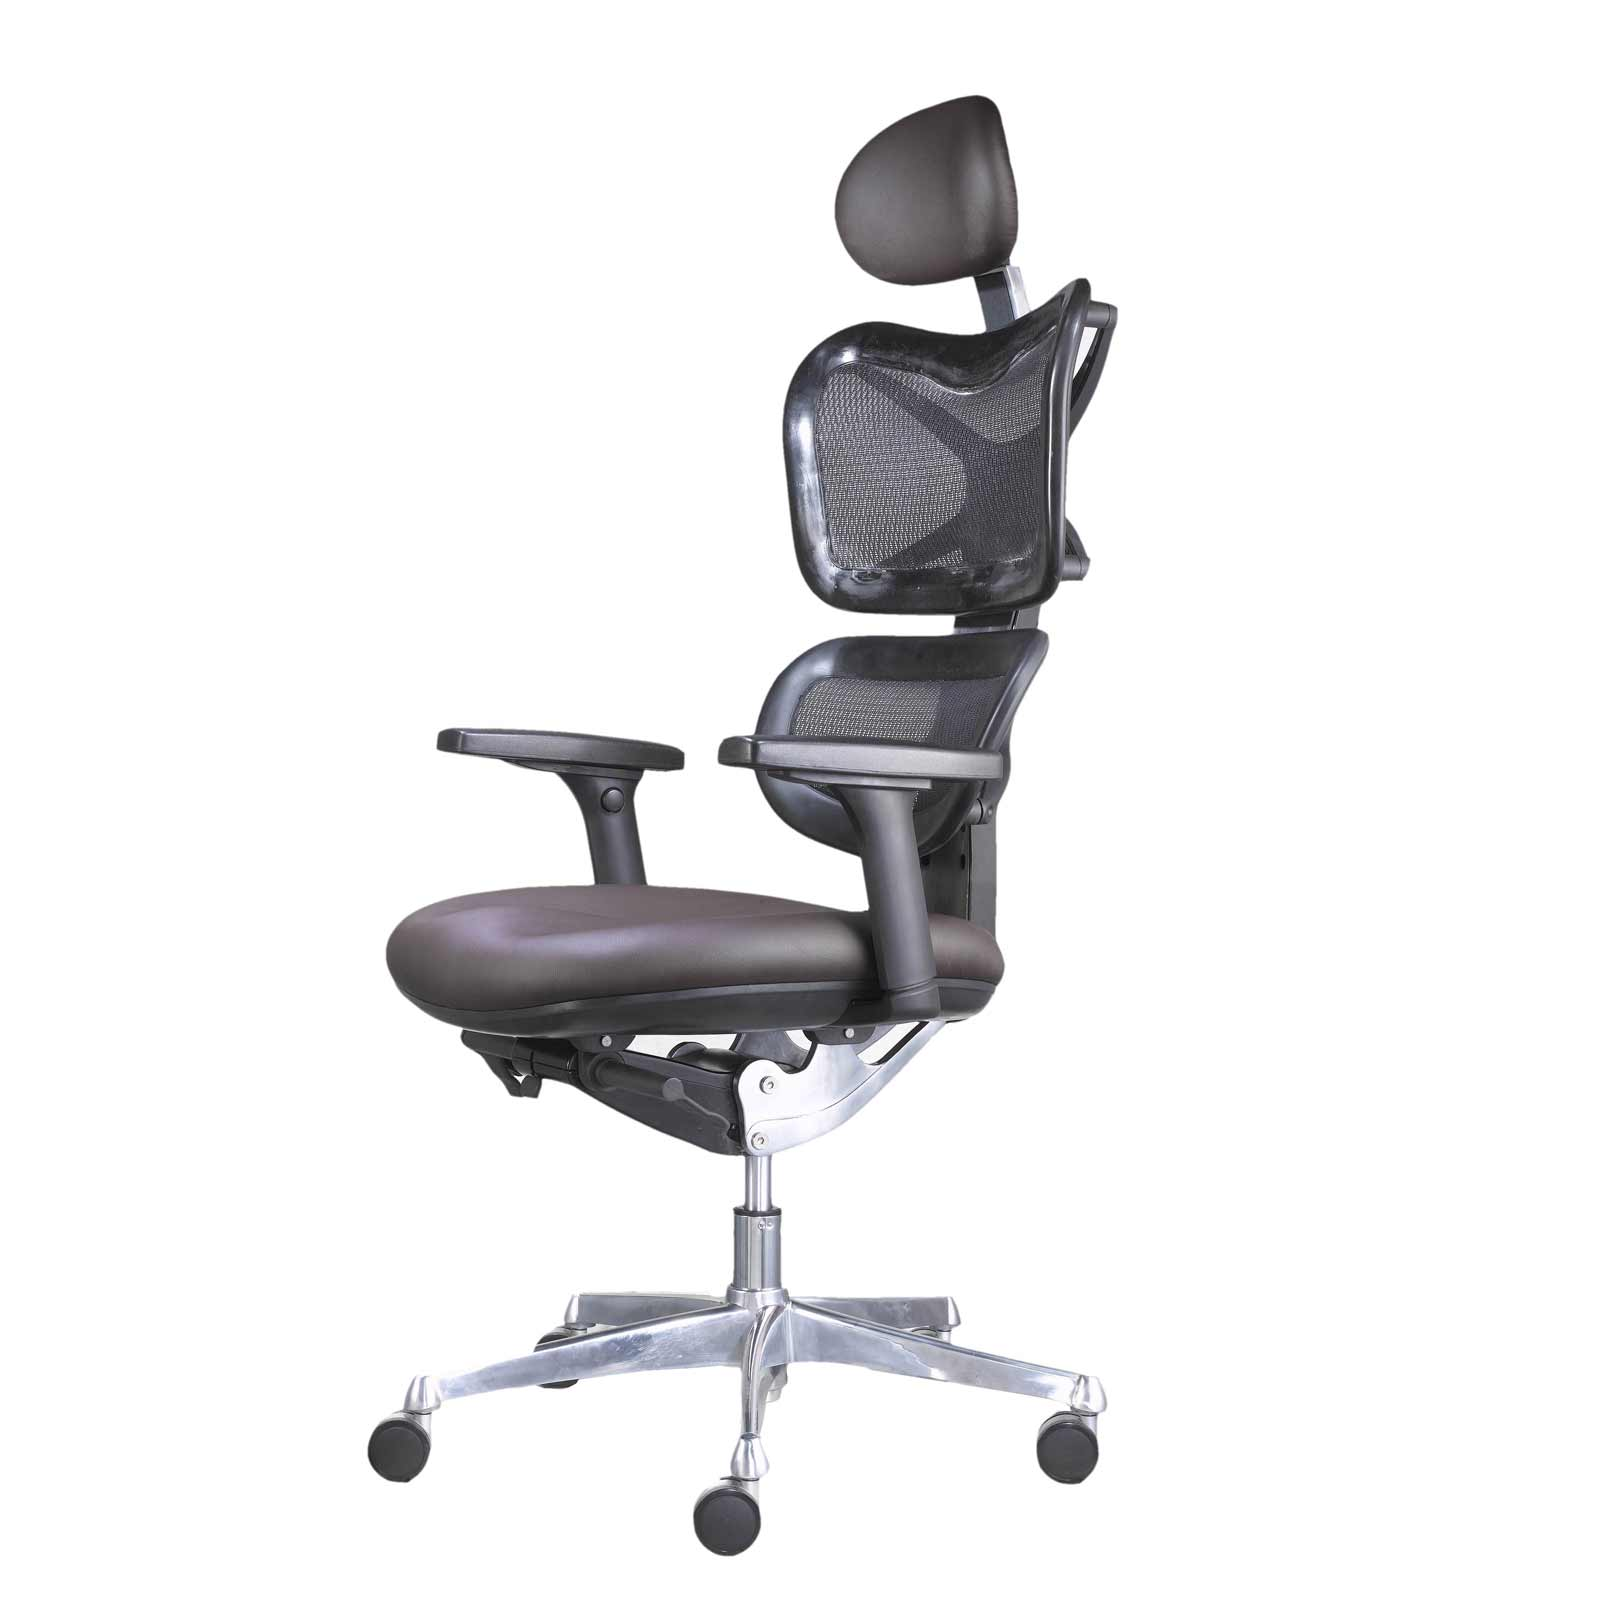 Modern Office Desk Chairs Office Chair Computer Chair Executive Chair Office Furniture